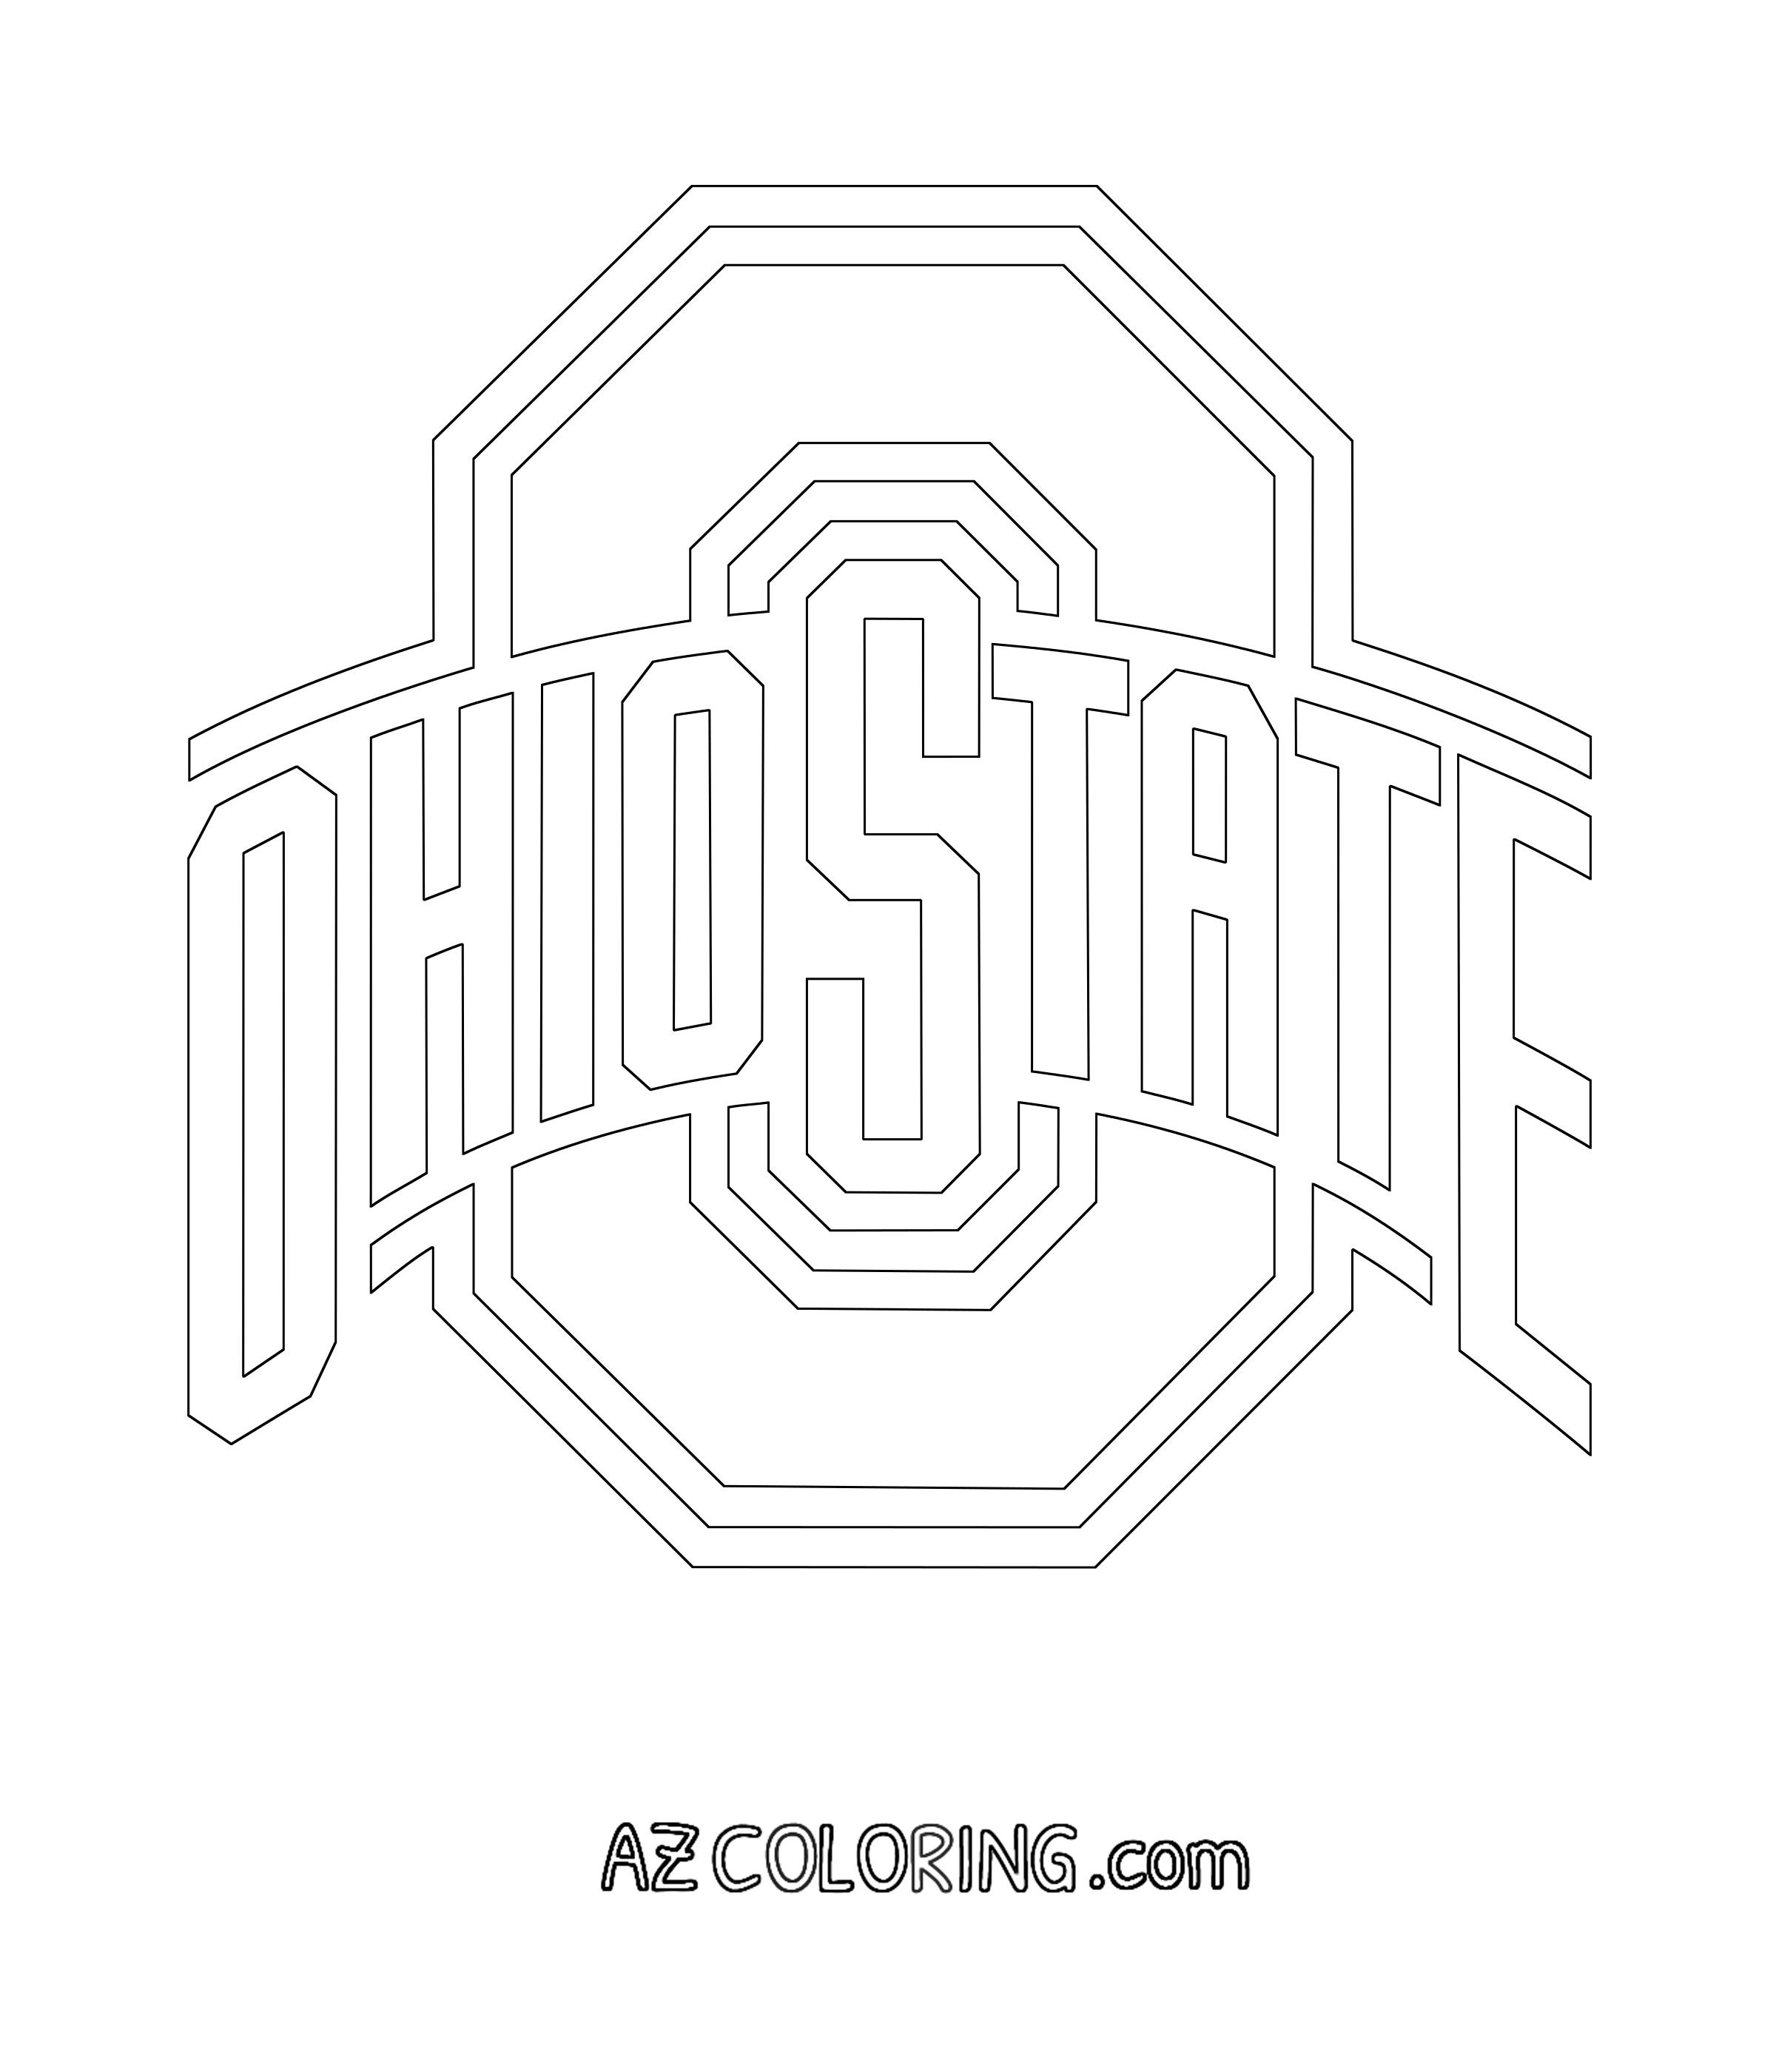 ohio coloring pages - photo#19